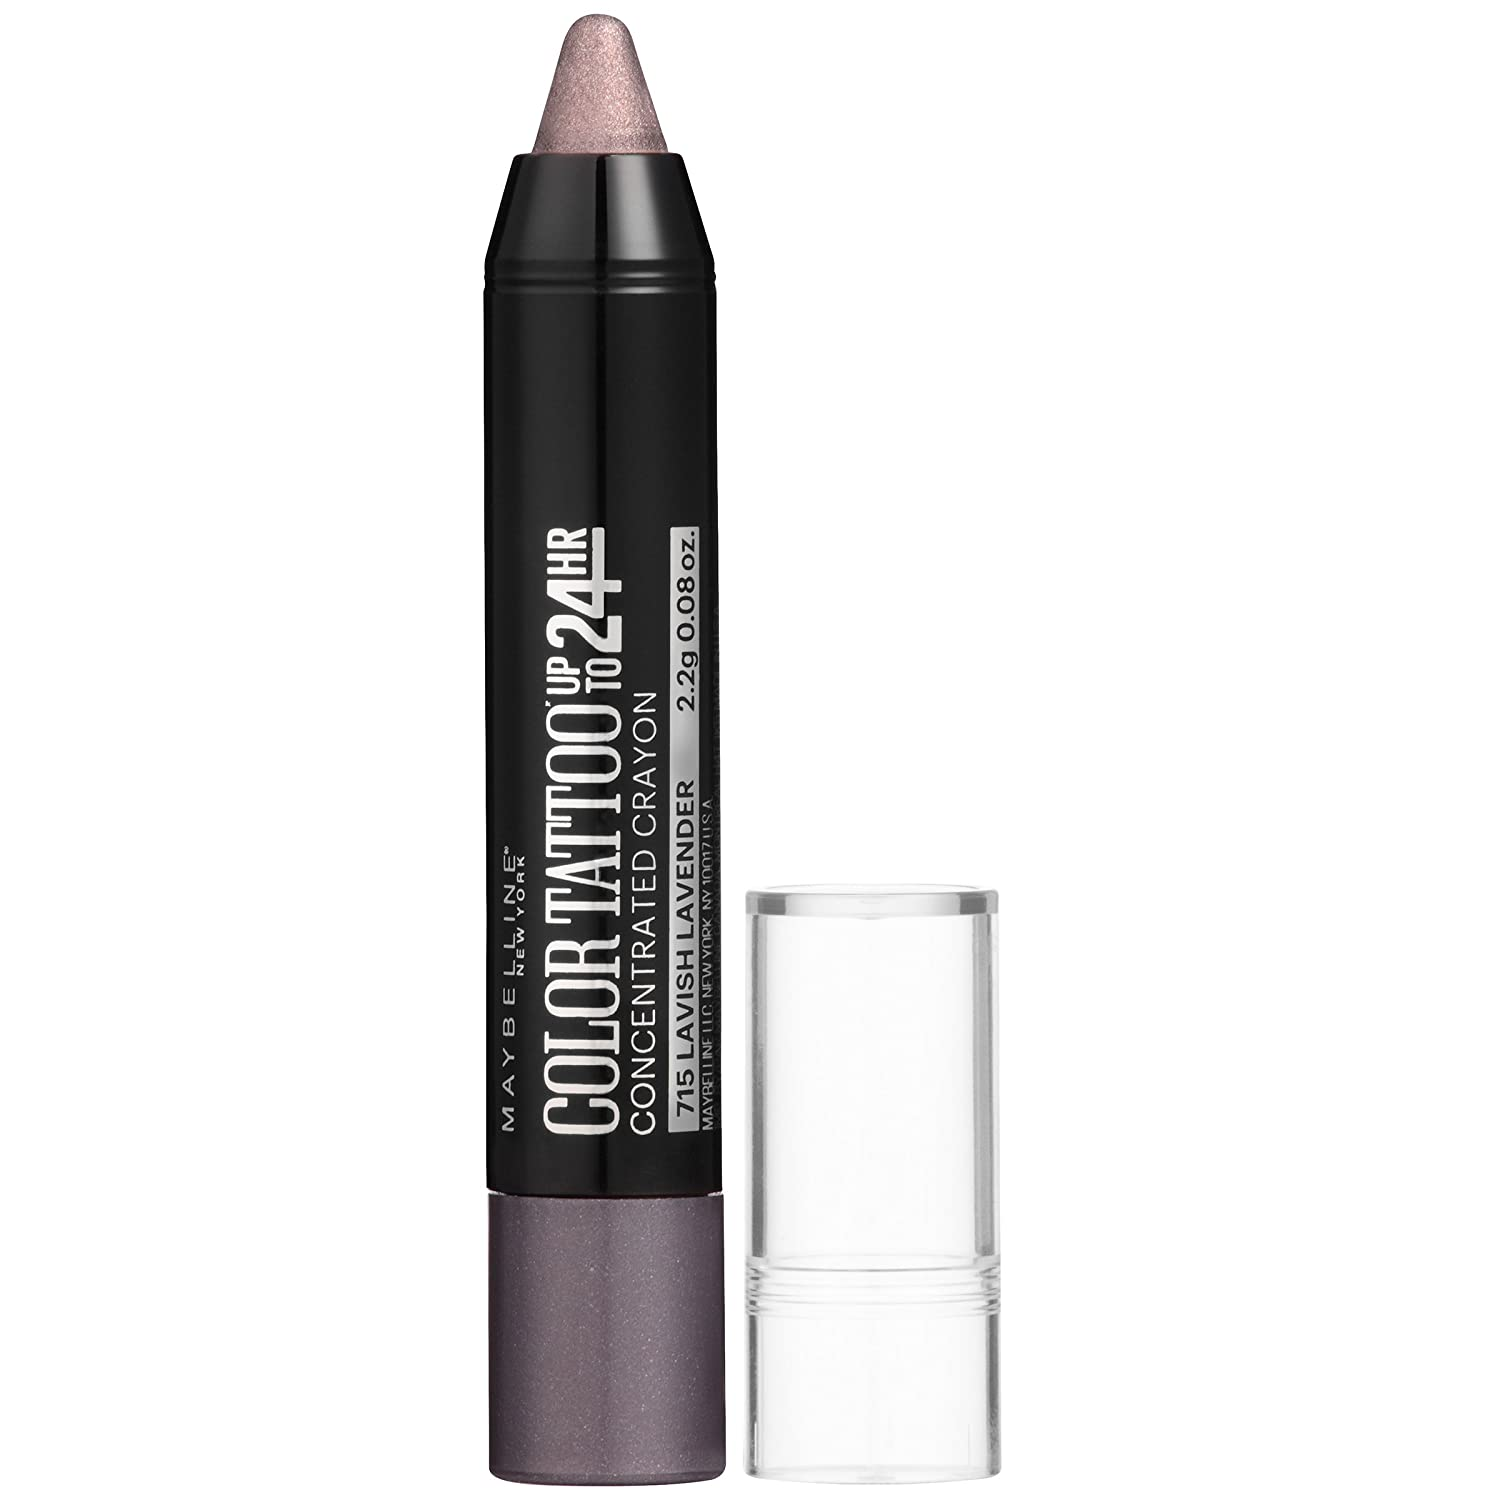 Maybelline New York Eyestudio Color Tattoo Concentrated Crayon Eye Color, Lavish Lavender, 0.08 Ounce K2003300